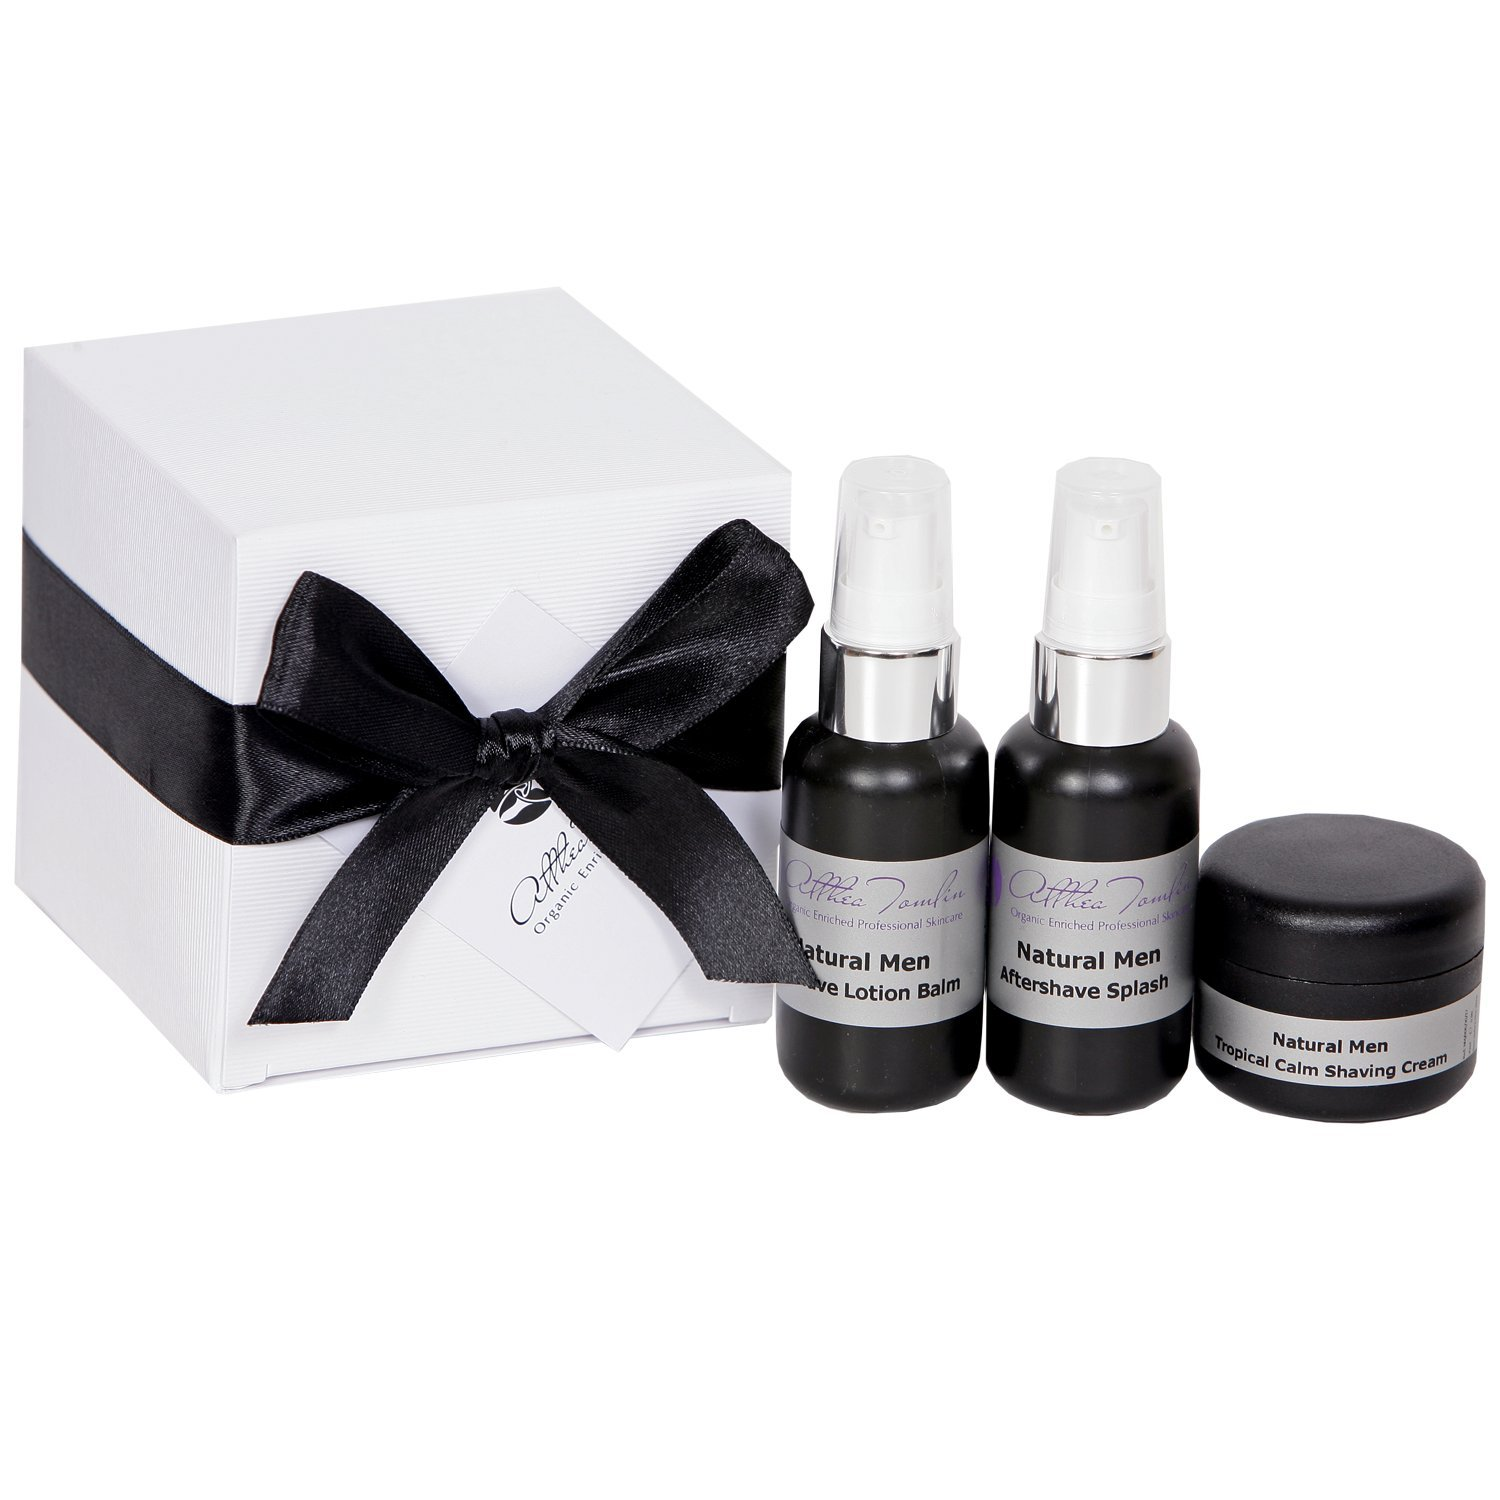 Christmas mens shaving gift set with organic shaving cream lotion balm and aftershave spritz a mens shaving set with shea cocoa butter and calendula to calm and relief irritable skin after shaving. Althea Tomlin Limited